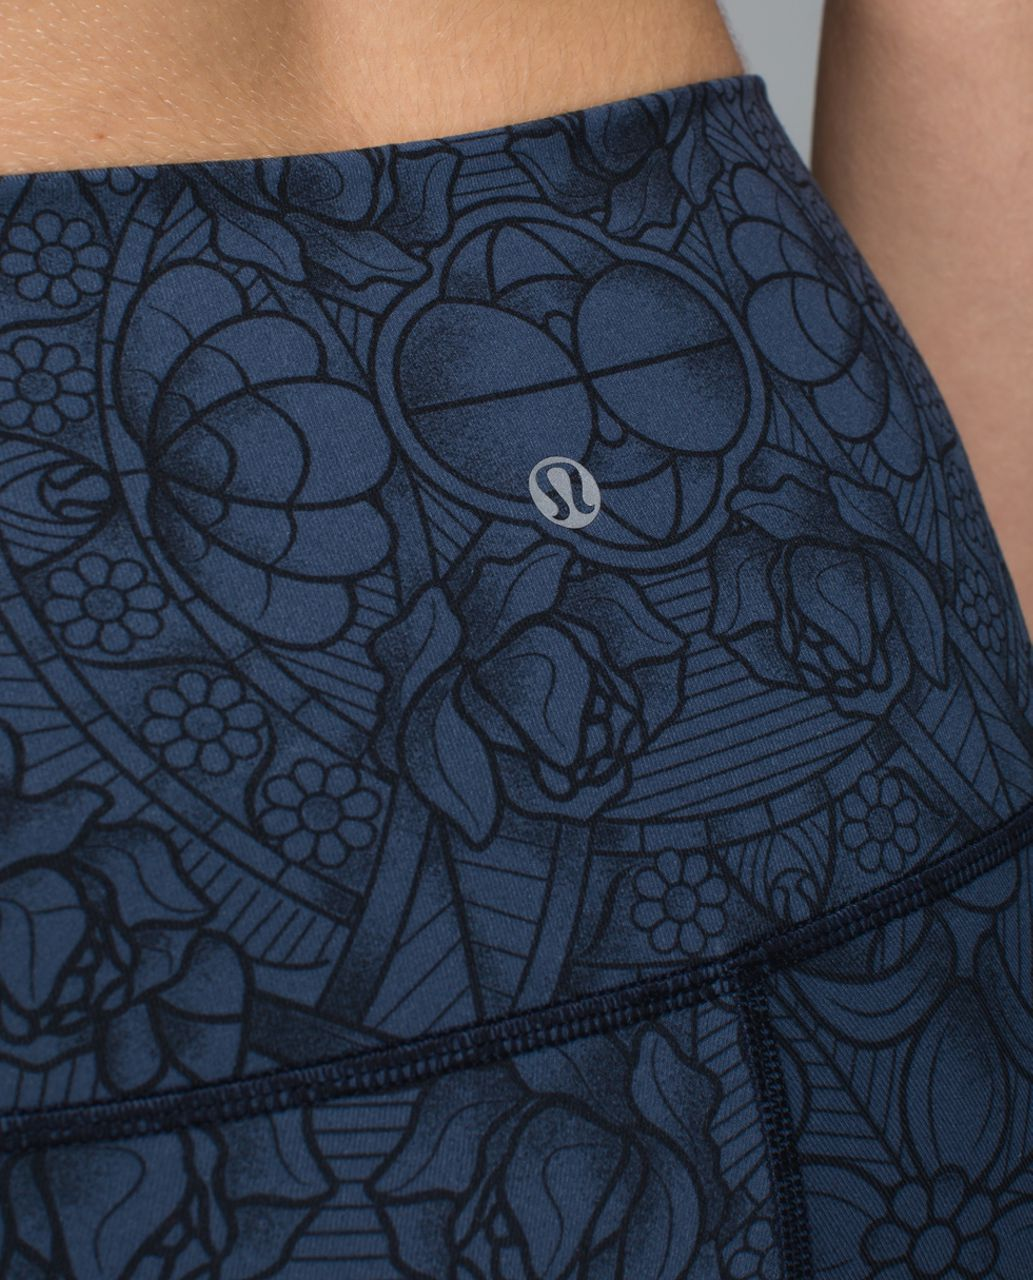 Lululemon Wunder Under Crop II *Full-On Luon (Roll Down) - Prisma Inkwell Black